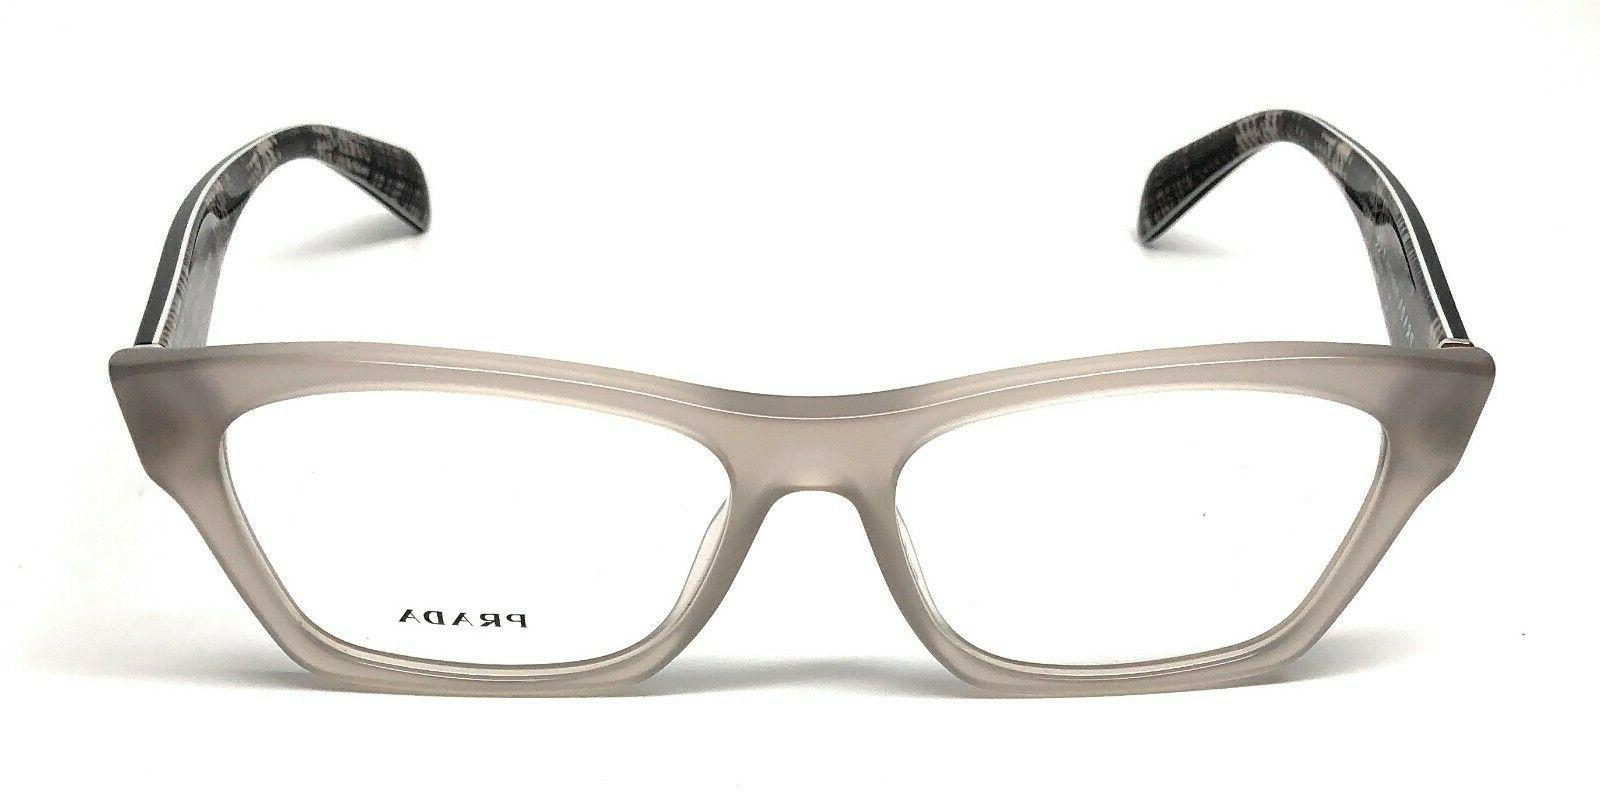 NEW VPR 22S UFH-1O1 EYEGLASSES